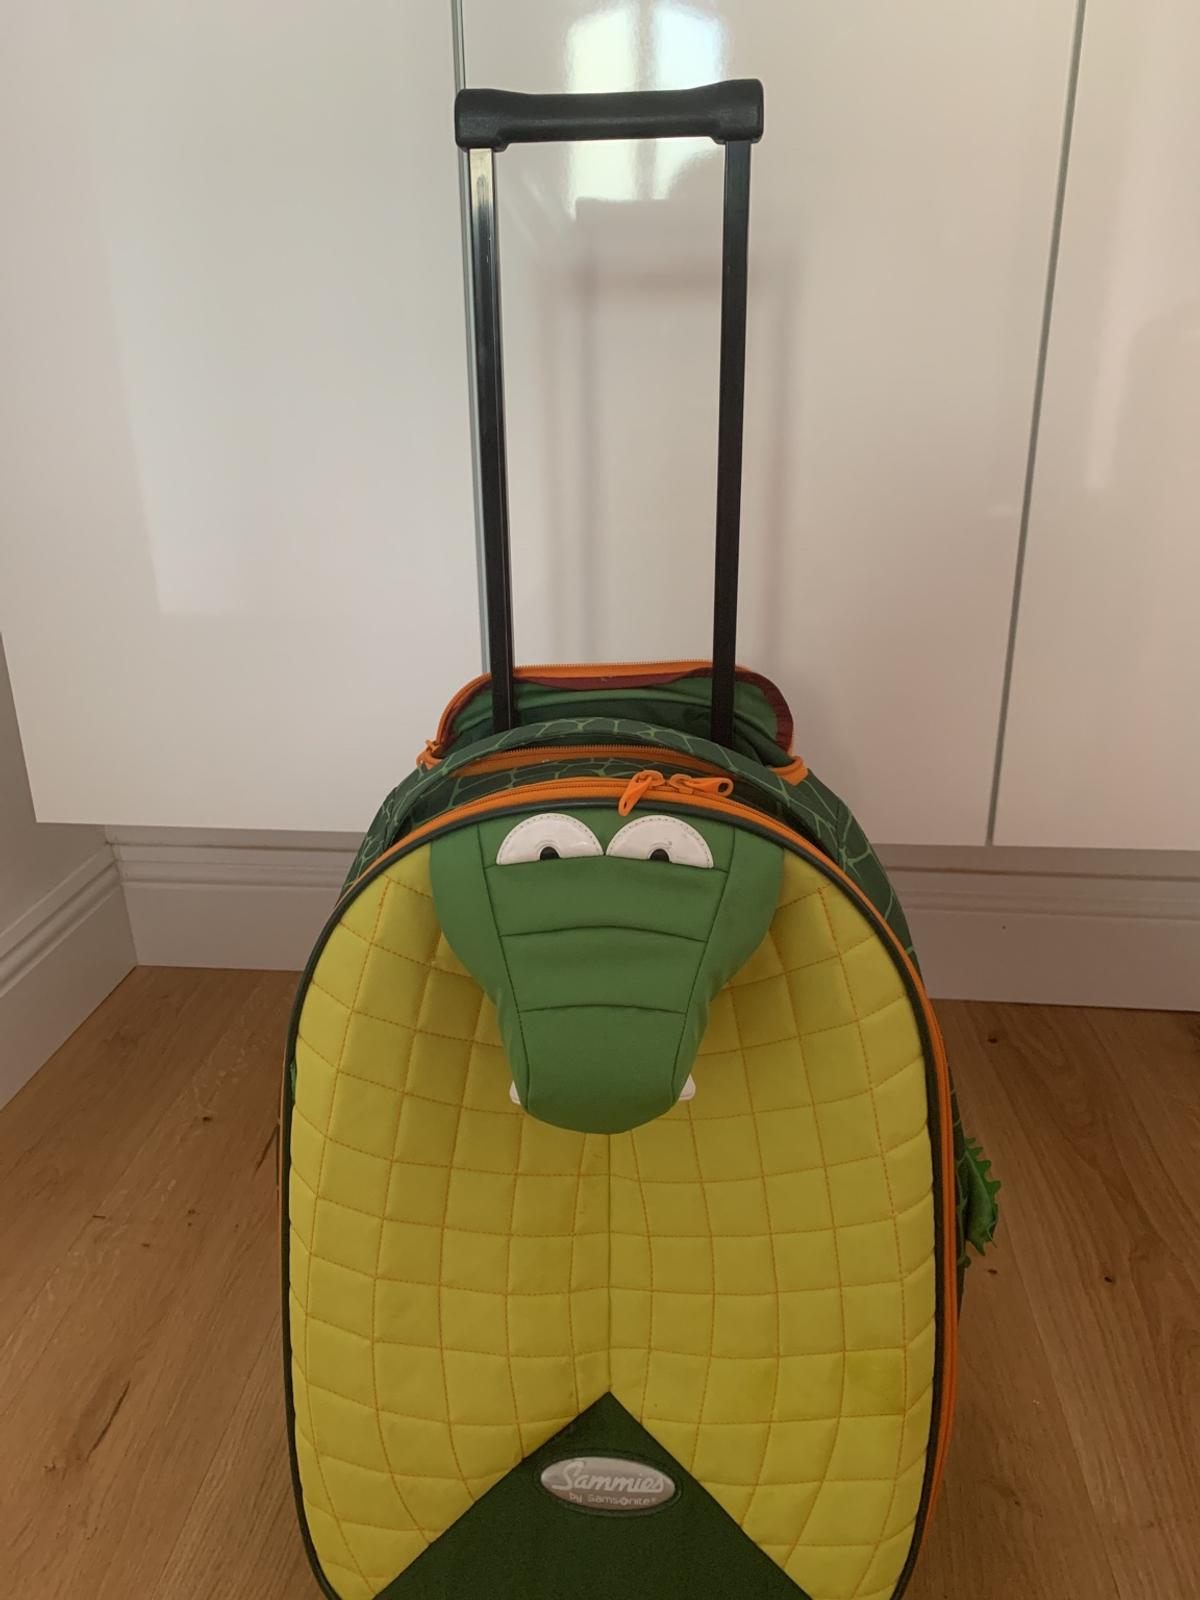 Samsonite Sammies Krokodil Koffer In 67245 Lambsheim For 30 00